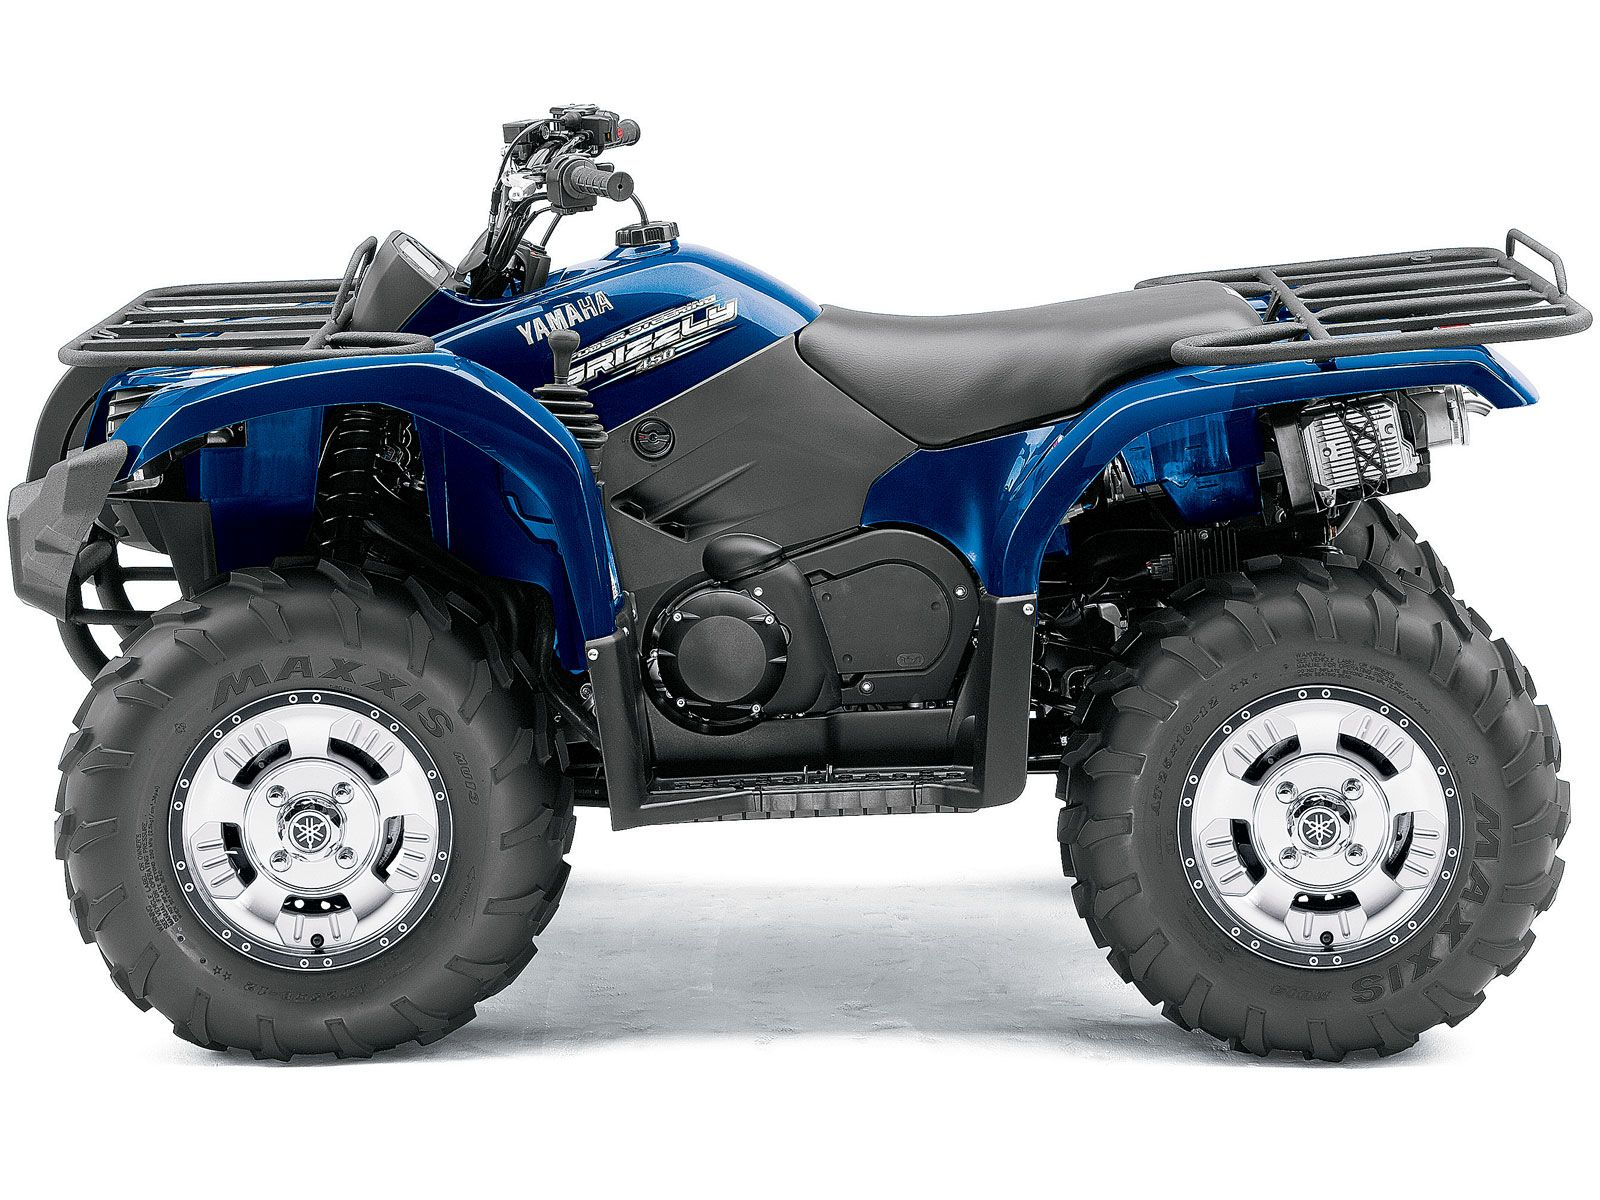 Yamaha Grizzly Wheel Base